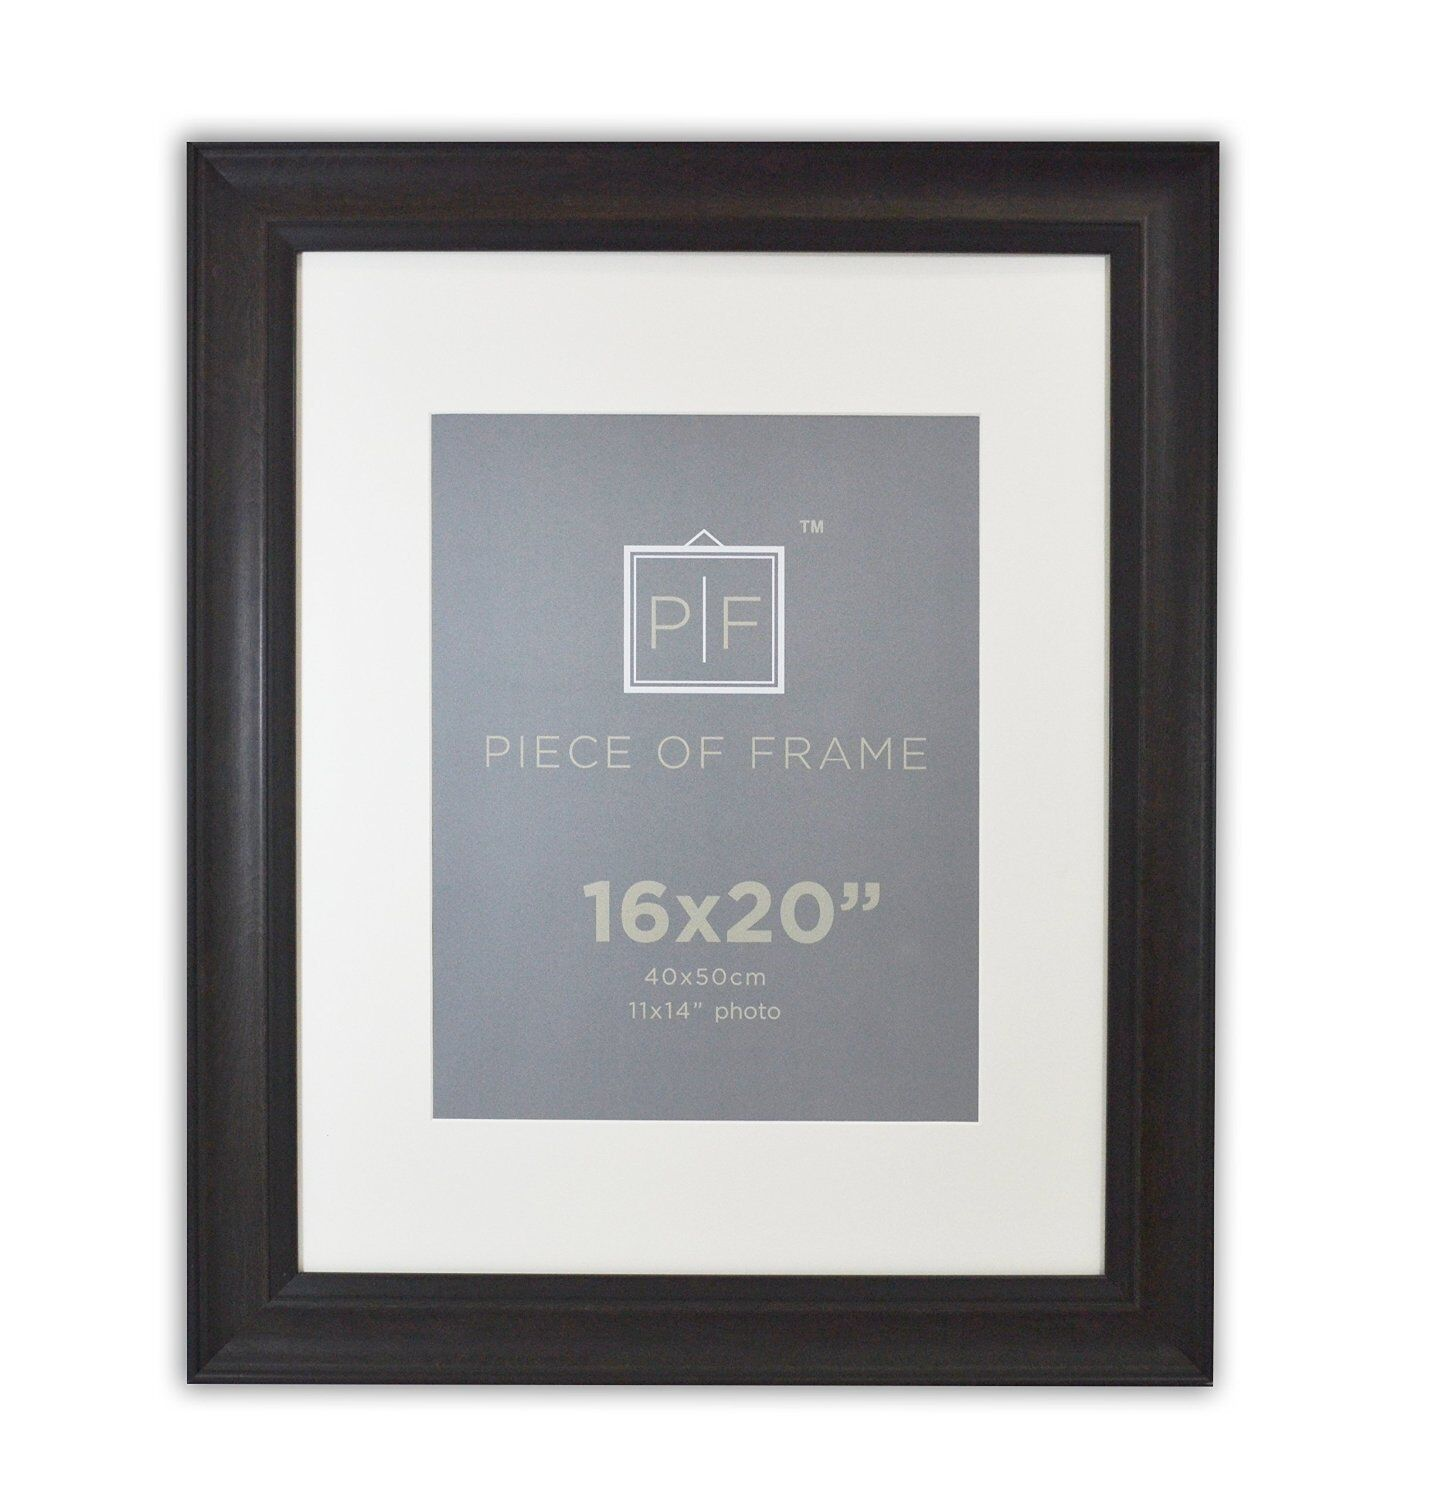 16x20 Dark Brown Frame with Black Border 2-inch wide with Iv